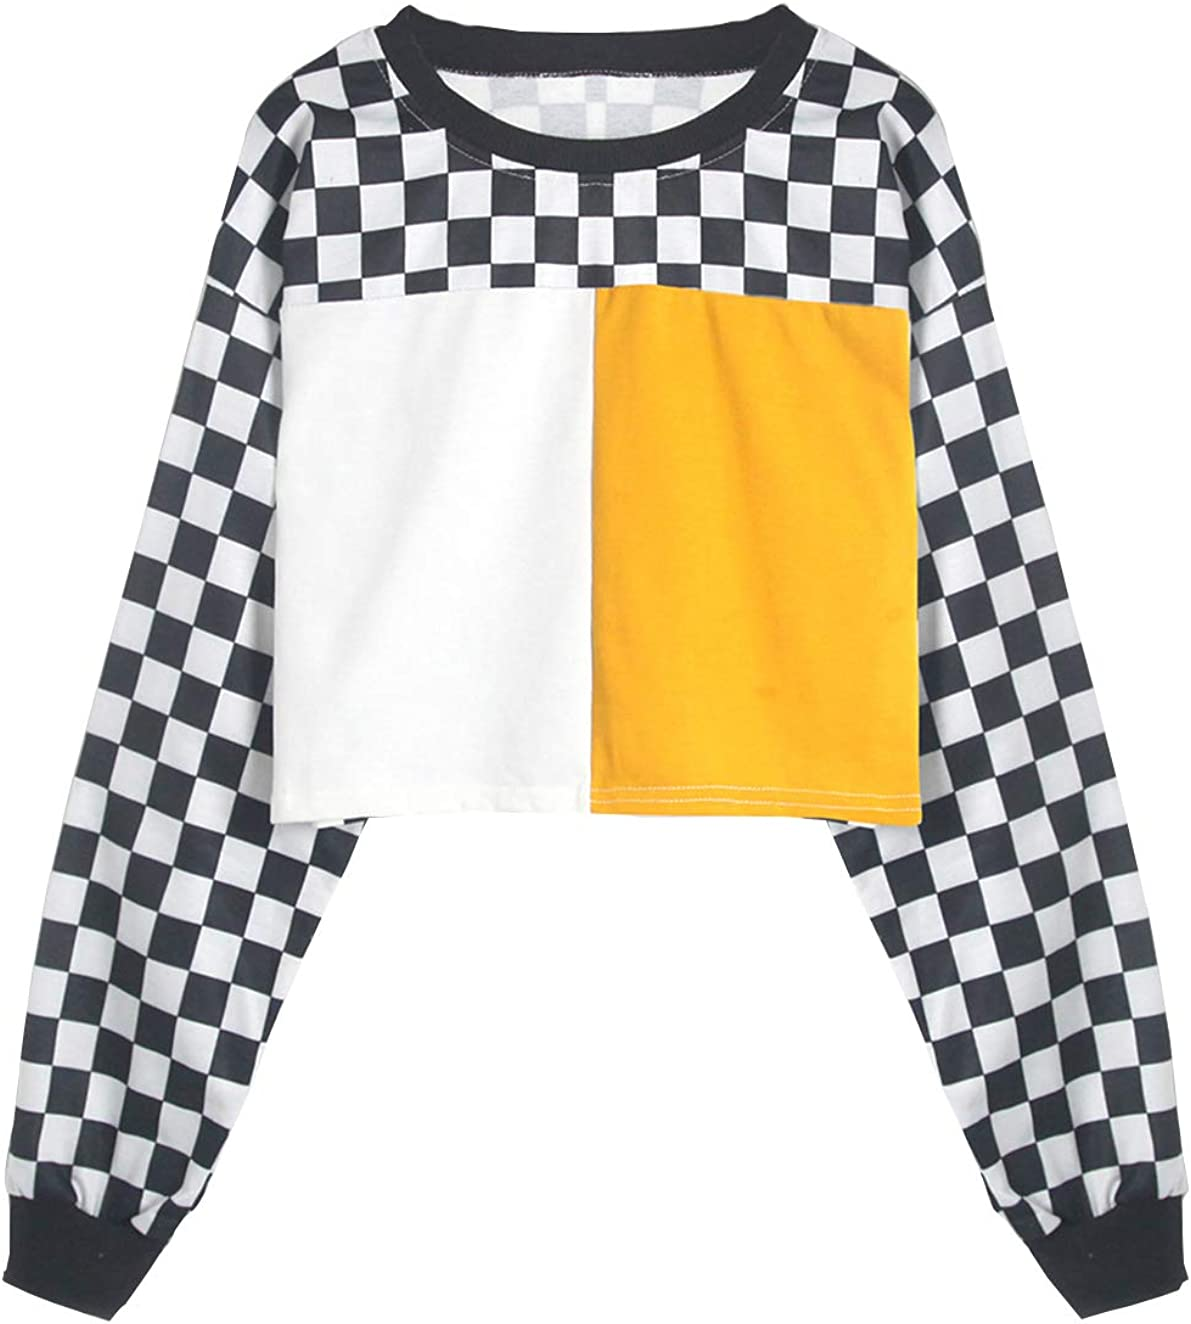 Cute Sweatshirts for Teen Girls Checkered Patchwork Shirt Jacket Crop Top Cropped Pullover Jumper Sweater Tops